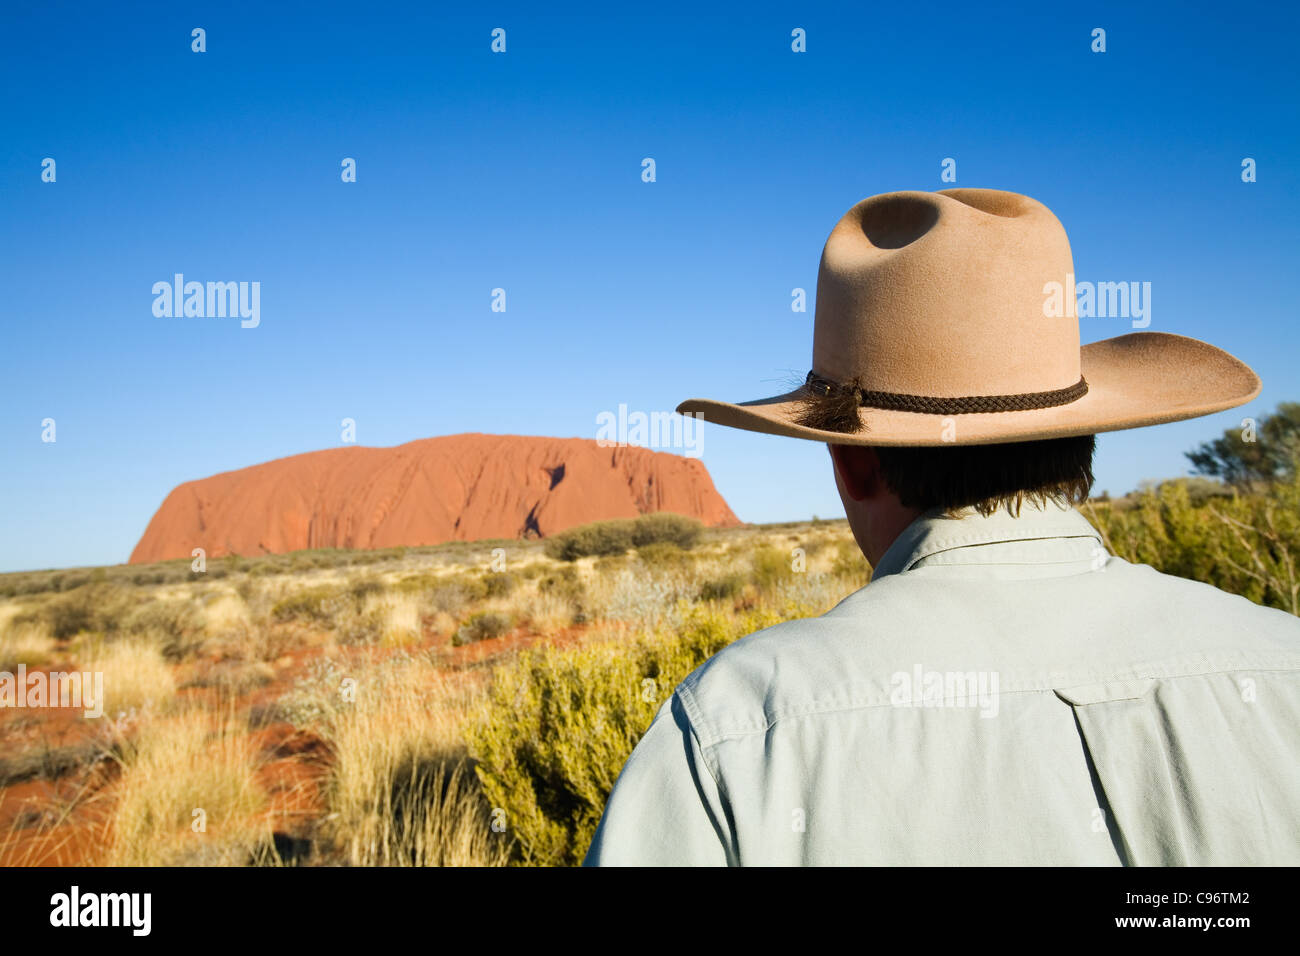 An outback guide looking towards Uluru (Ayers Rock).  Uluru-Kata Tjuta National Park, Northern Territory, Australia - Stock Image